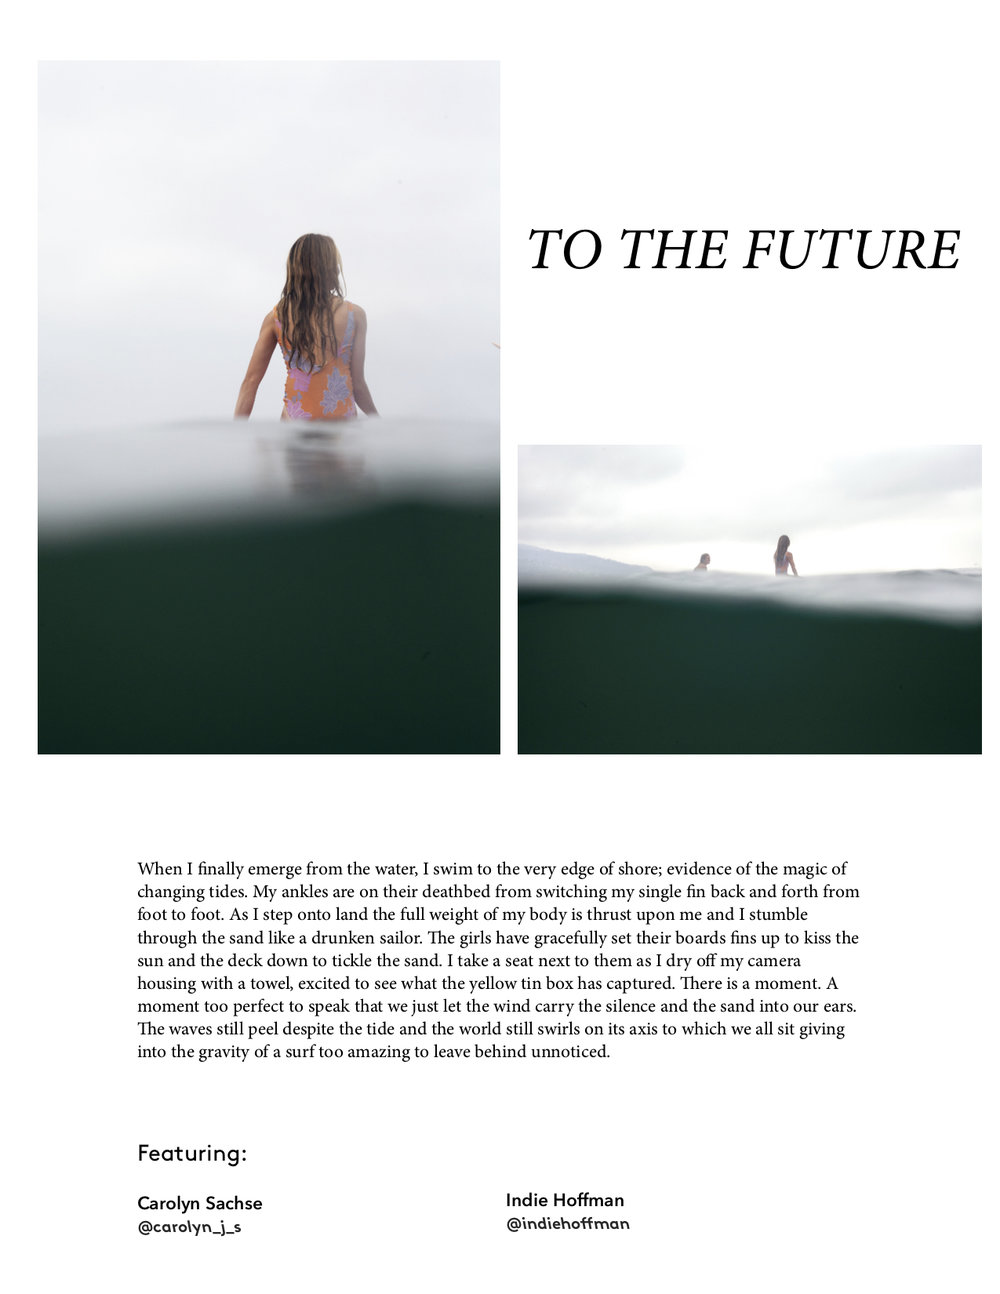 A talk with the future_121318_pg9.jpg